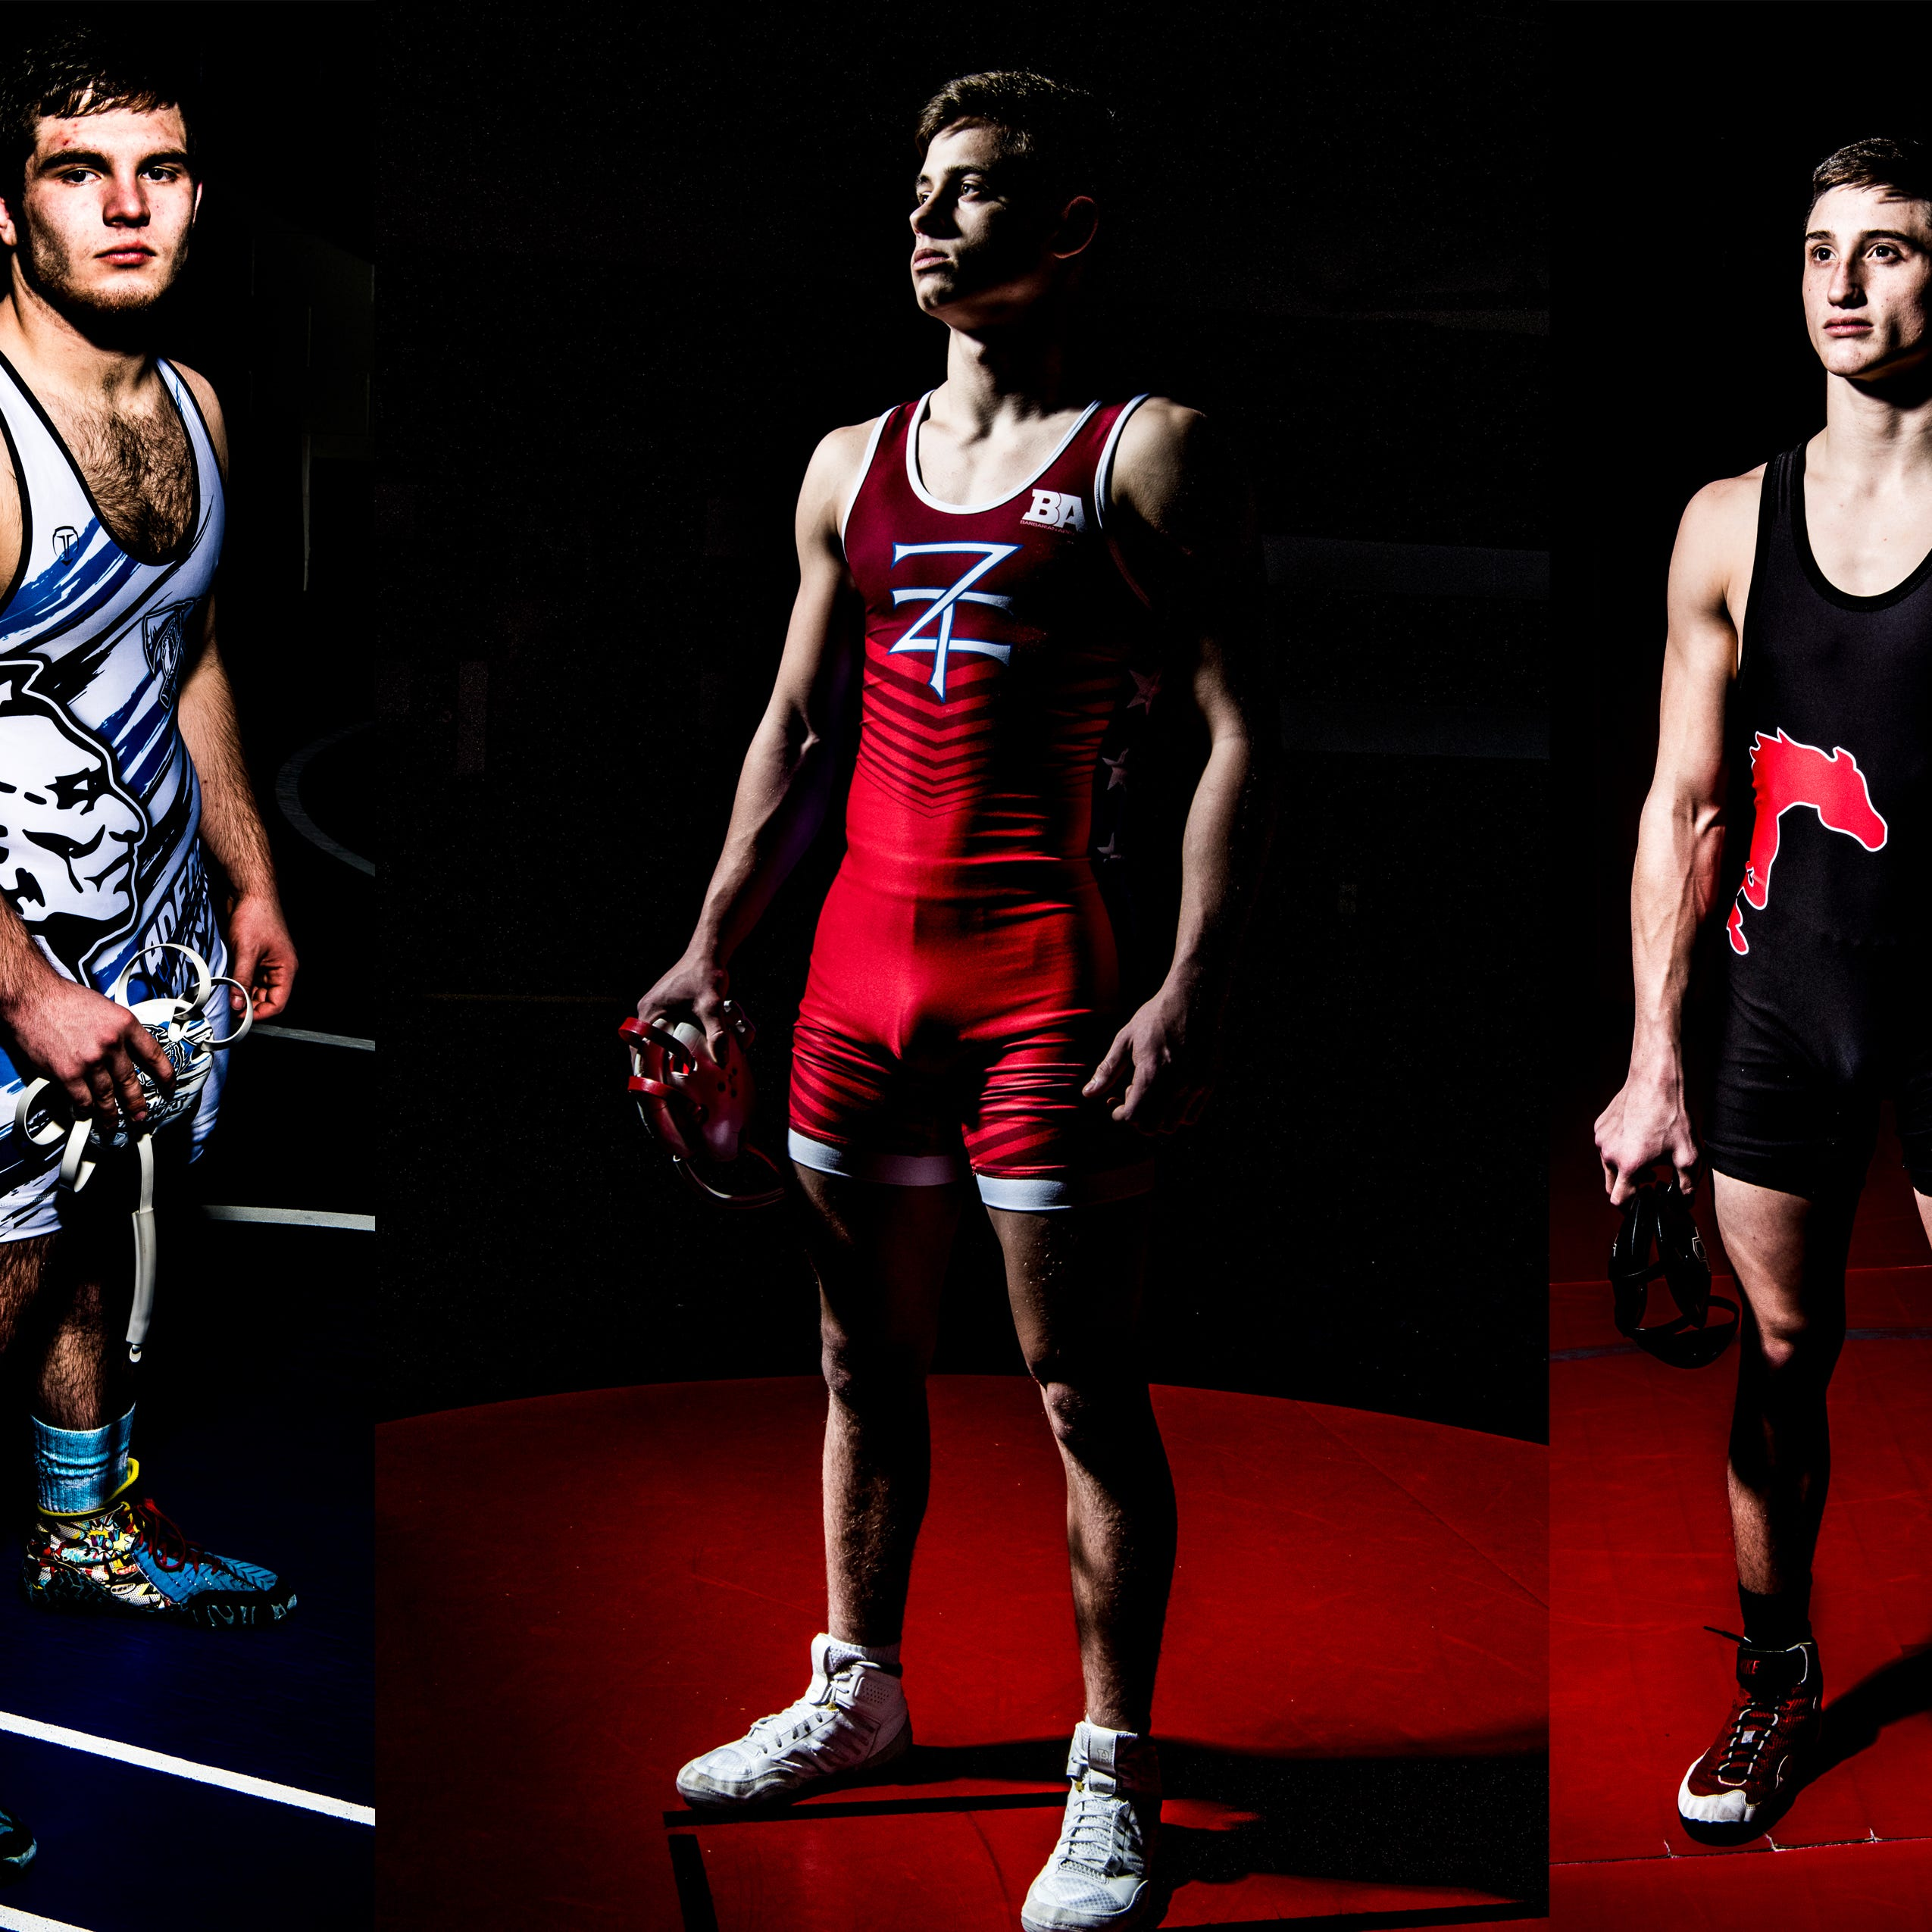 State wrestling: Three local wrestlers ready for the challenge